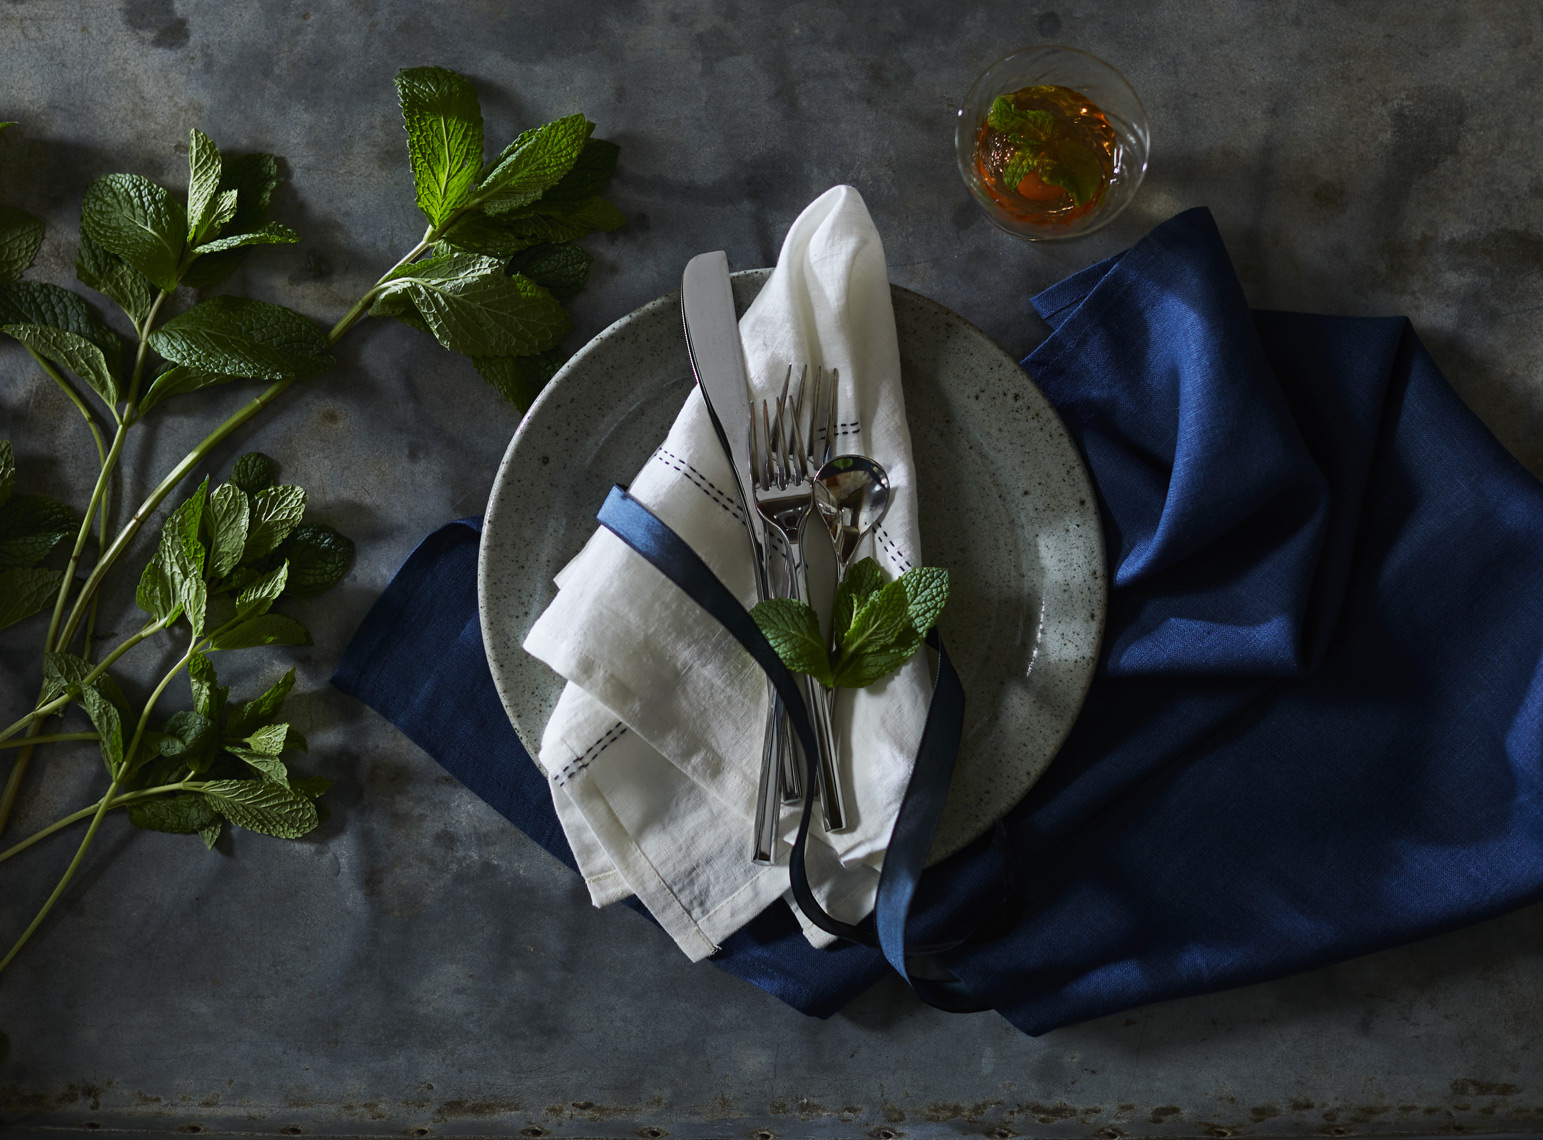 Polished silverware on linen napkin w/ greens and indigo napkin Sean Dagen Photography